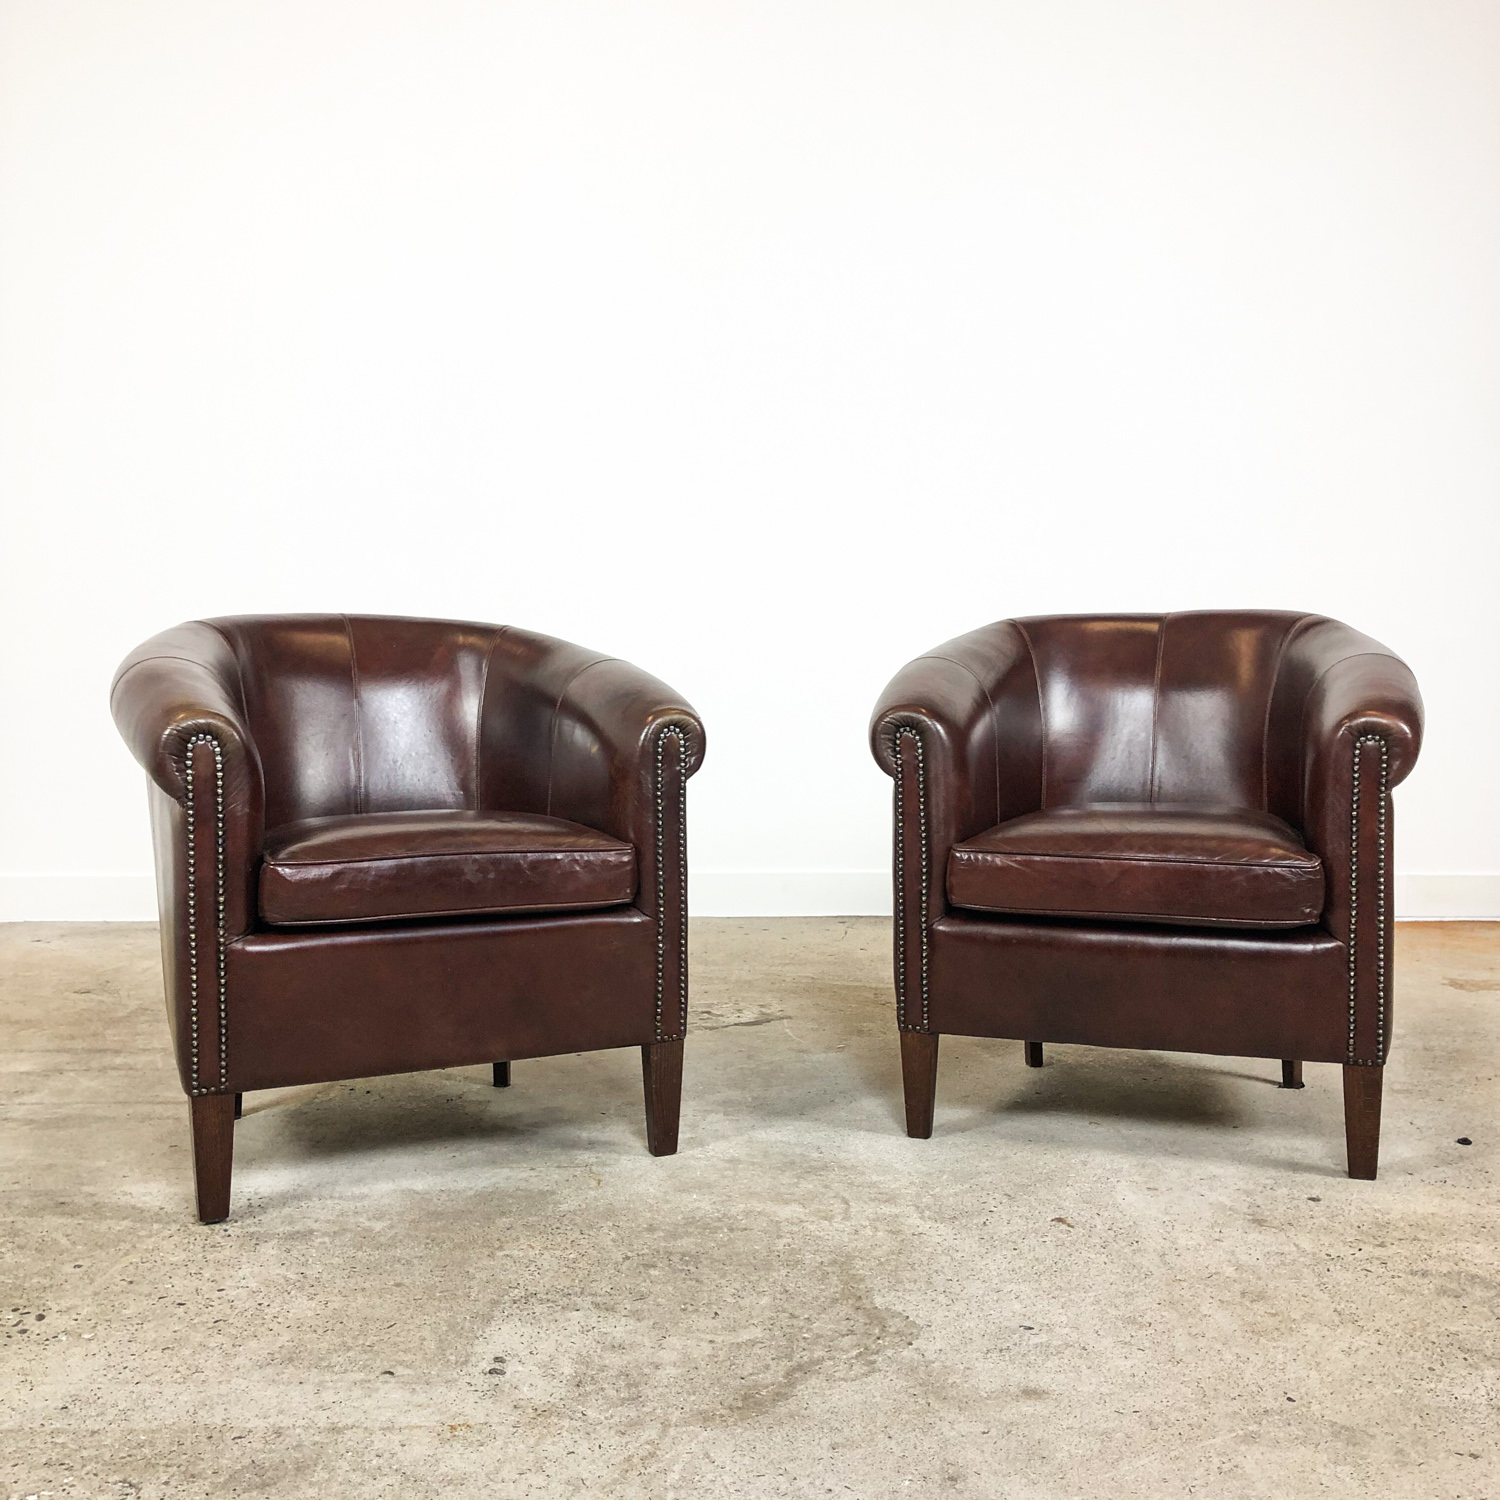 Set of two dark brown sheep leather club chairs